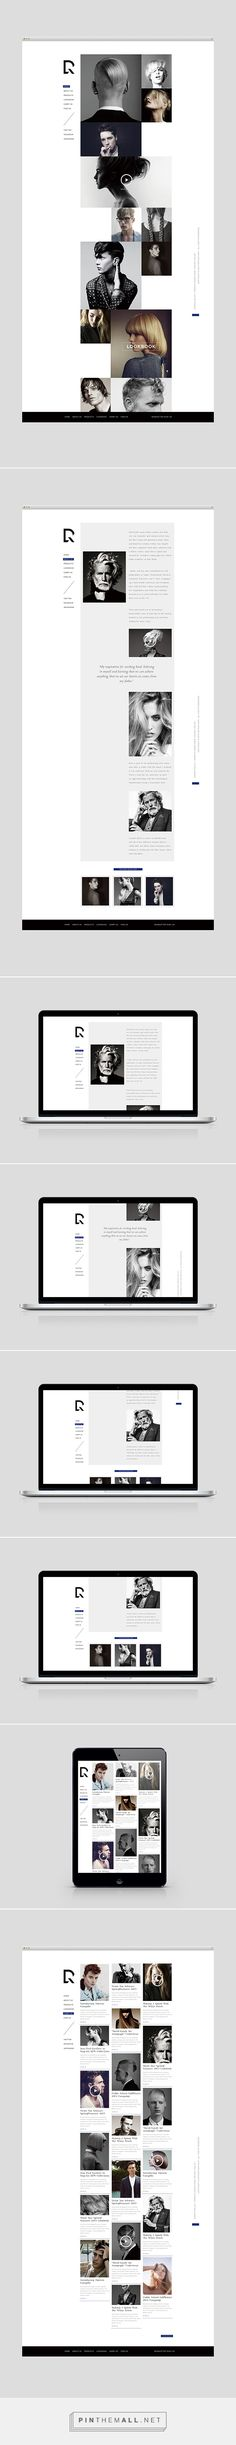 DRYRUN Boutique Luxury Hair Salon Web Design by Shou-Wei Tsai | Fivestar Branding Agency – Design and Branding Agency & Curated Inspiration Gallery